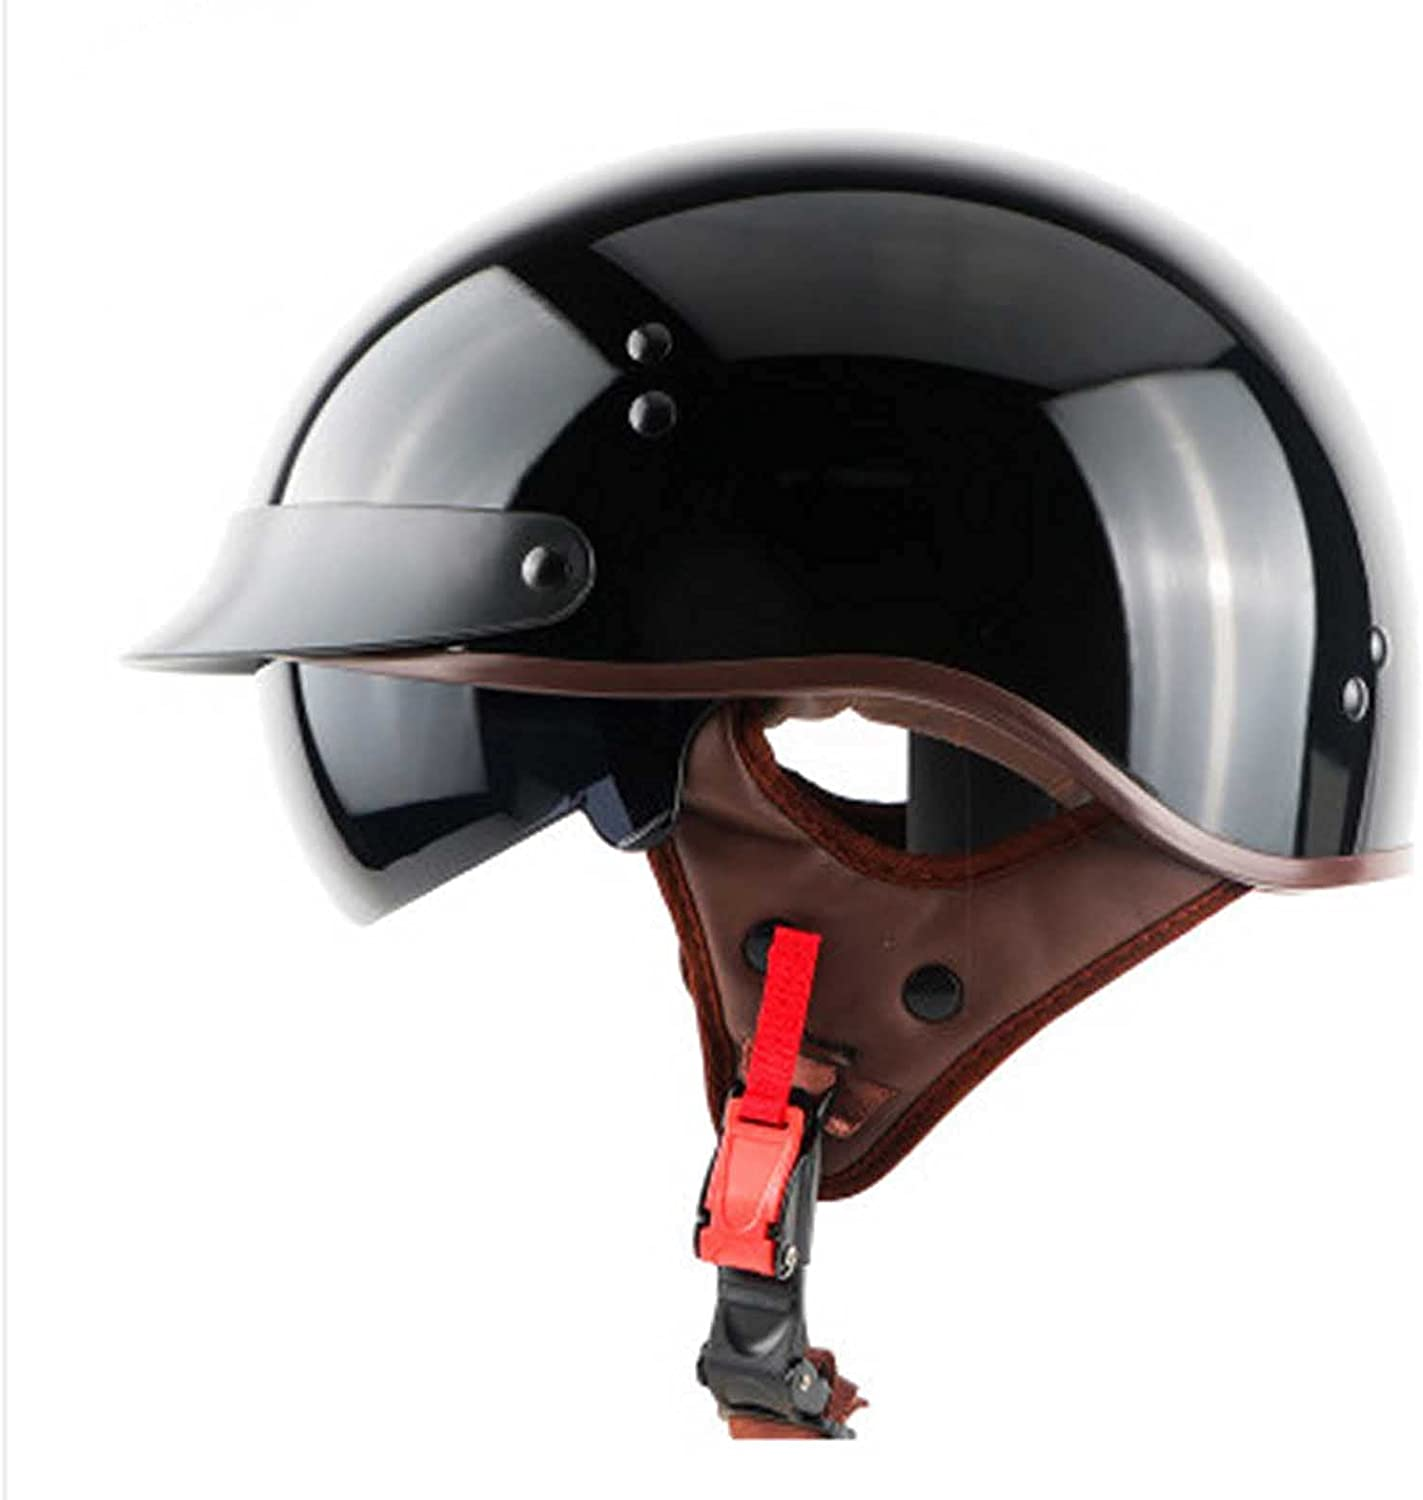 All stores are sold GAOZ Vintage Style Retro Open-Face Street Motorcycle Finally popular brand Helmet Cap